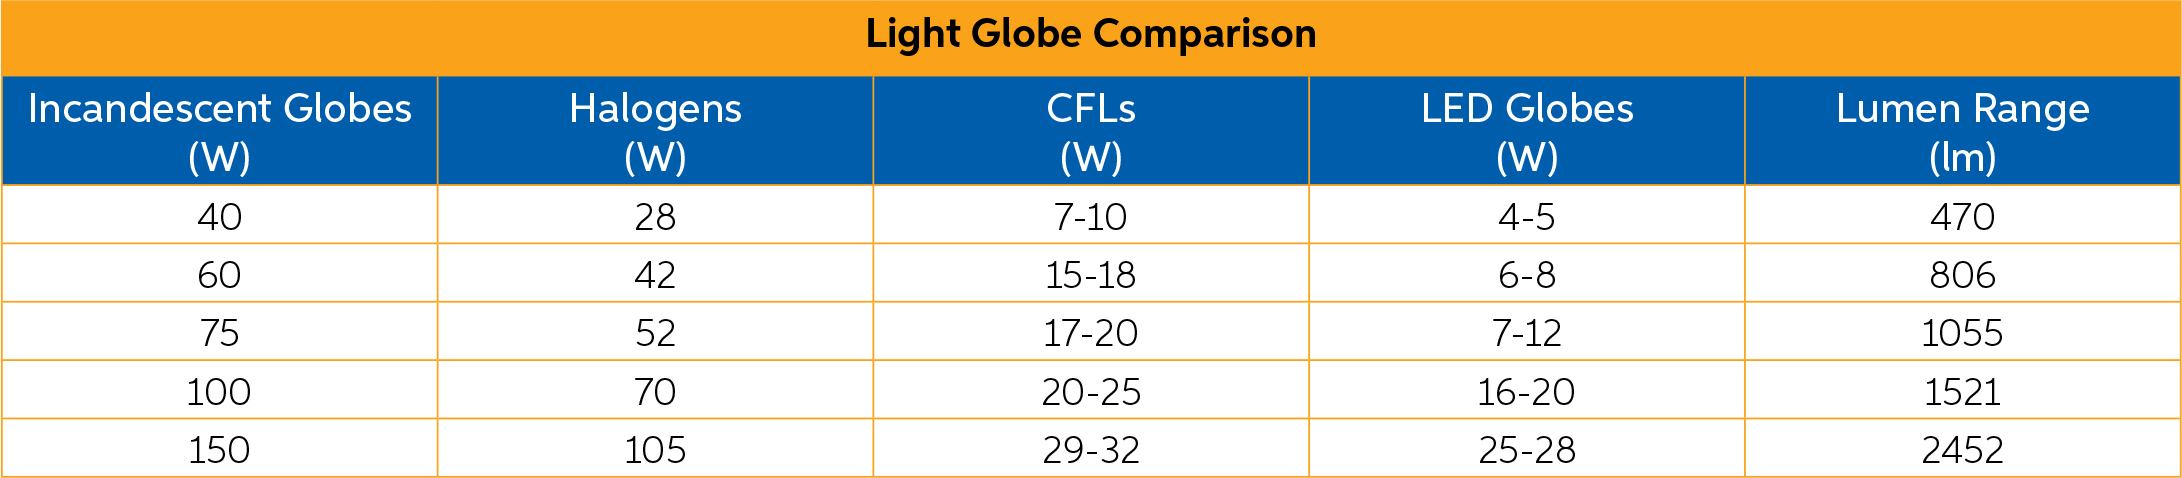 Redilight light globe comparison for incadescent, halogens, CFL and LED globes